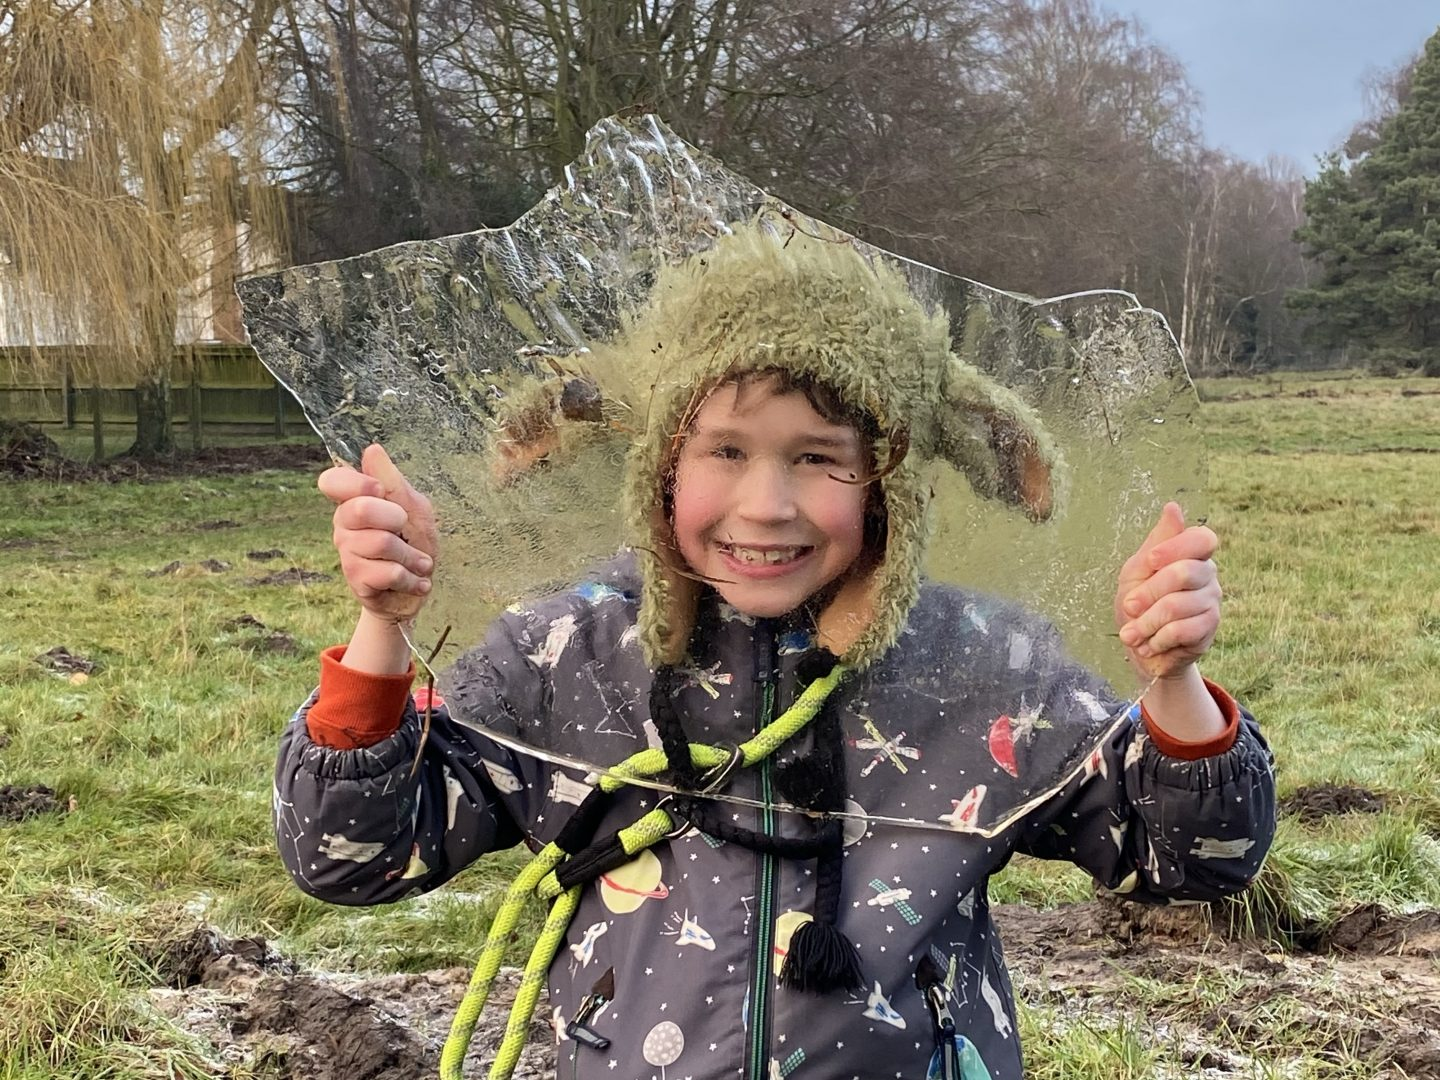 a young boy holding up ice and smiling